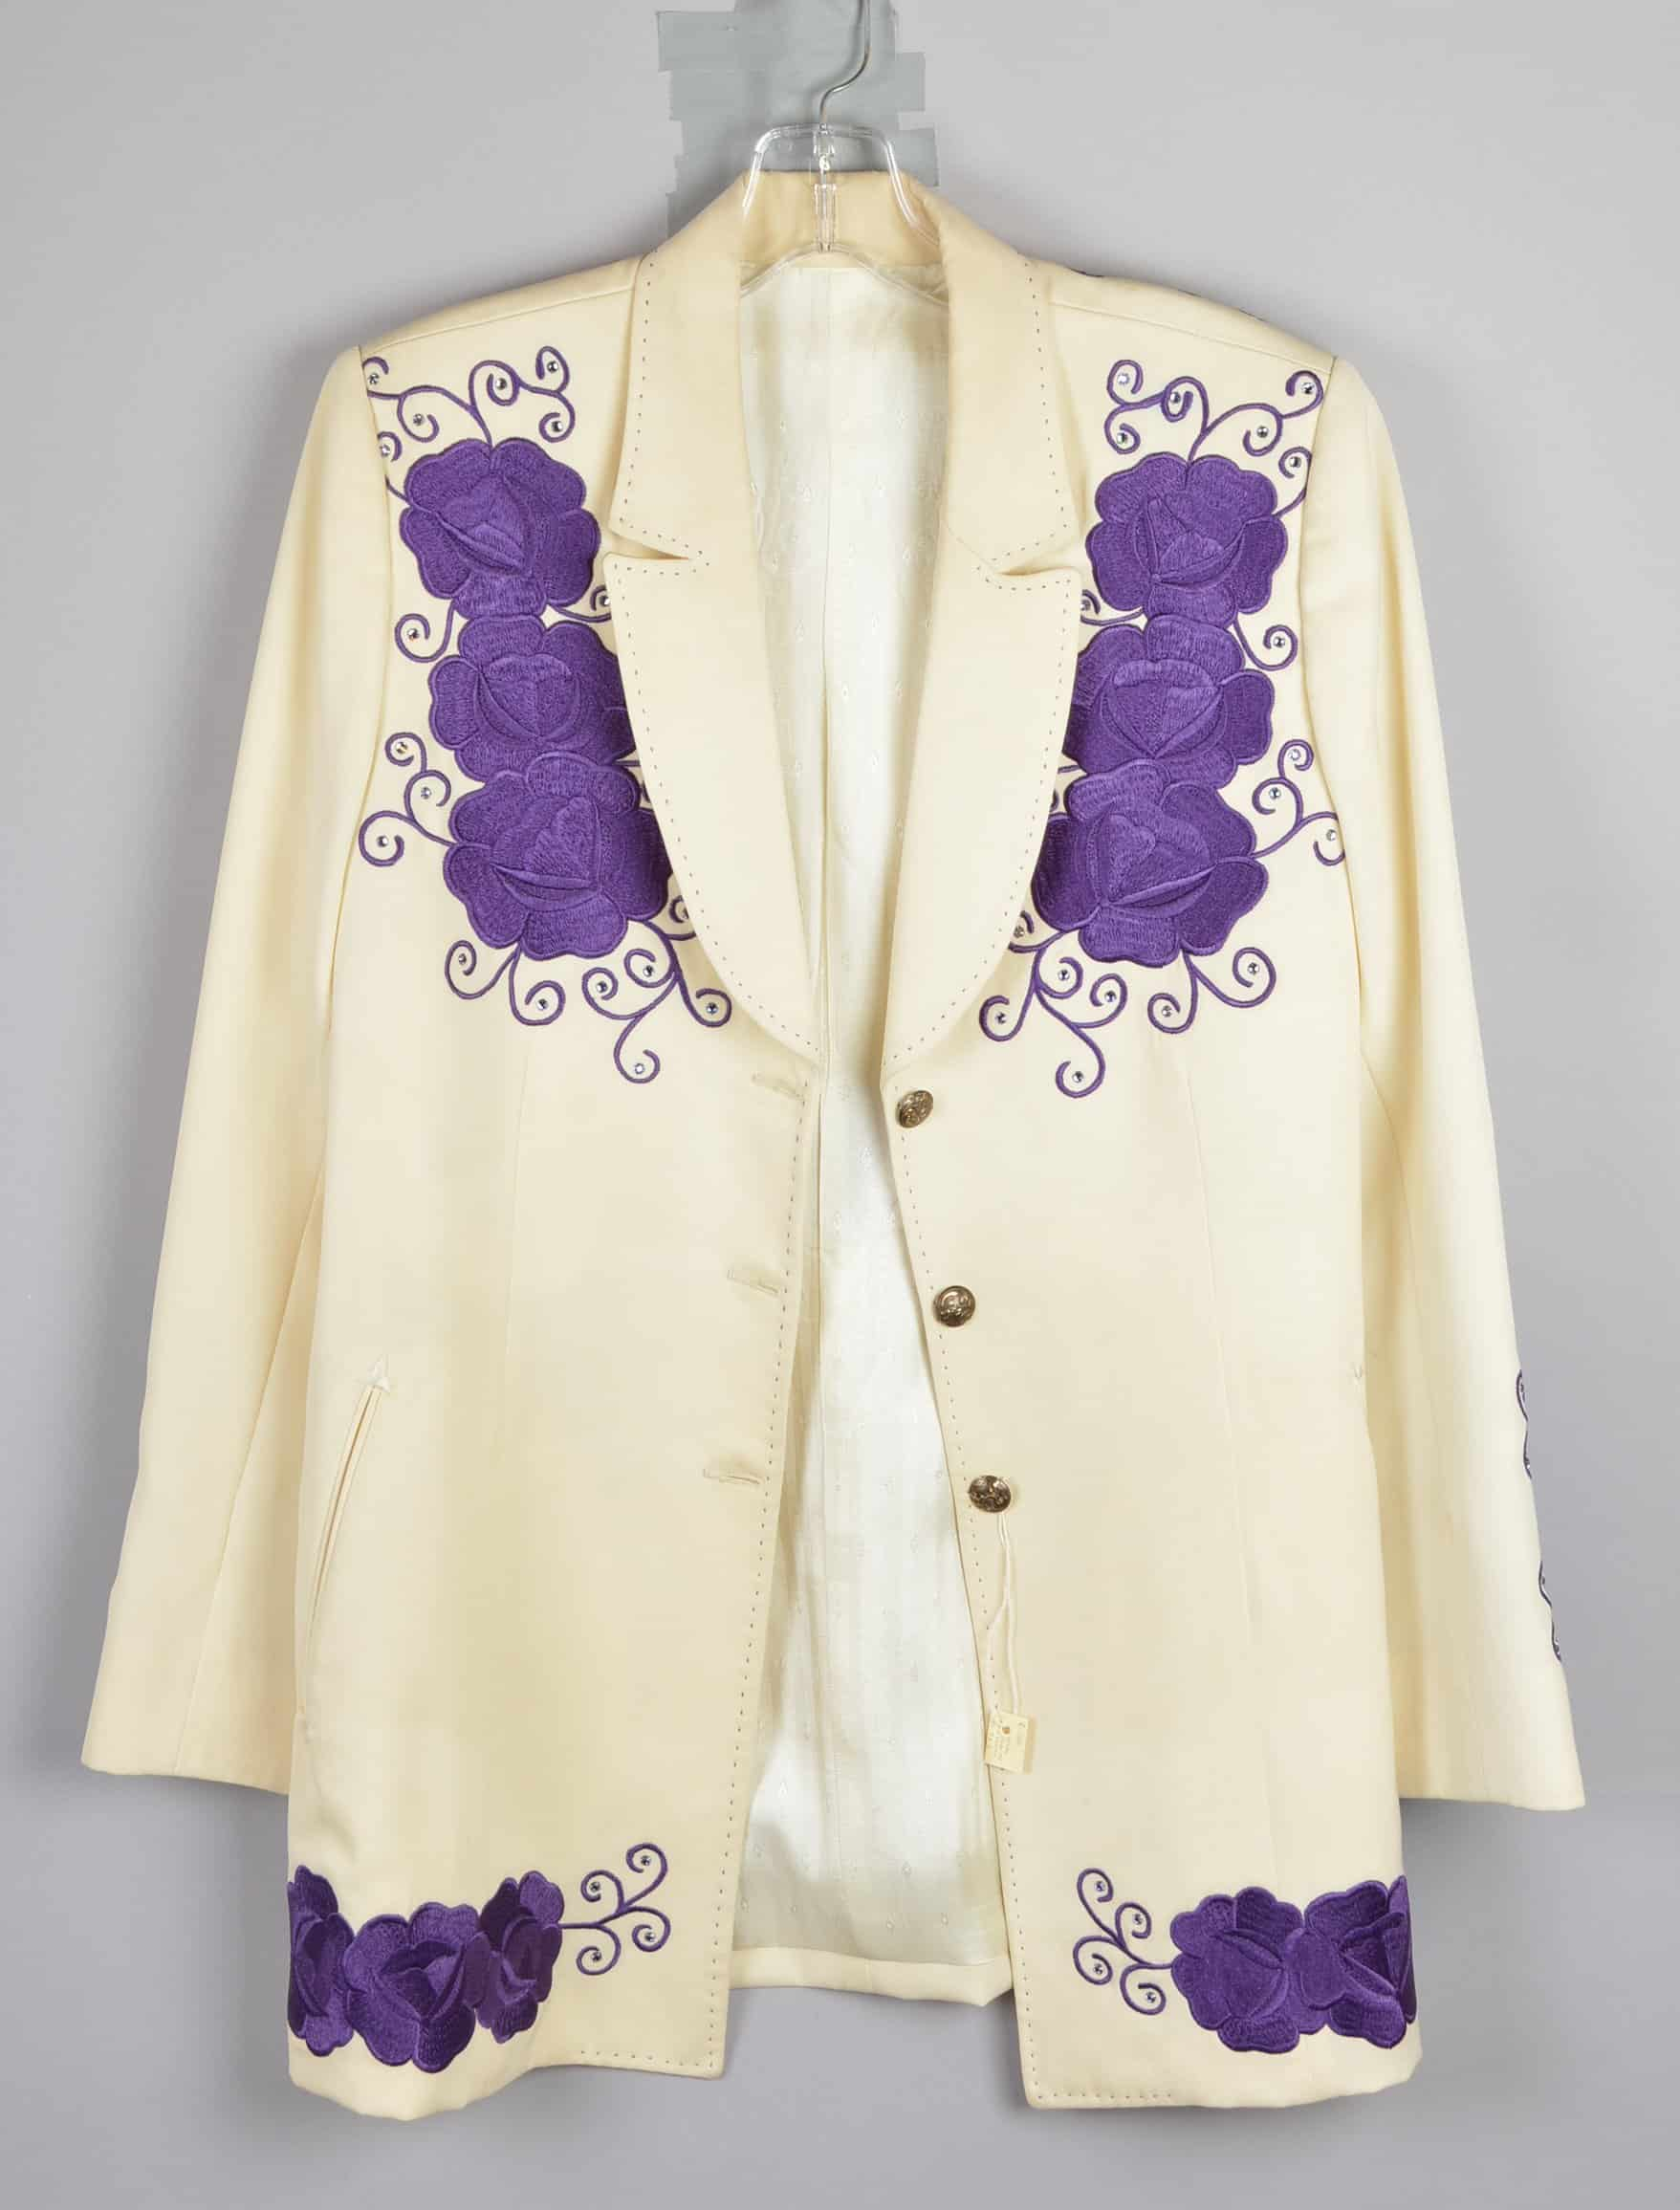 Rosanne Cash wore this Manuel jacket, embellished with embroidery and rhinestones, at a music festival in Basel, Switzerland, November 7, 2009.